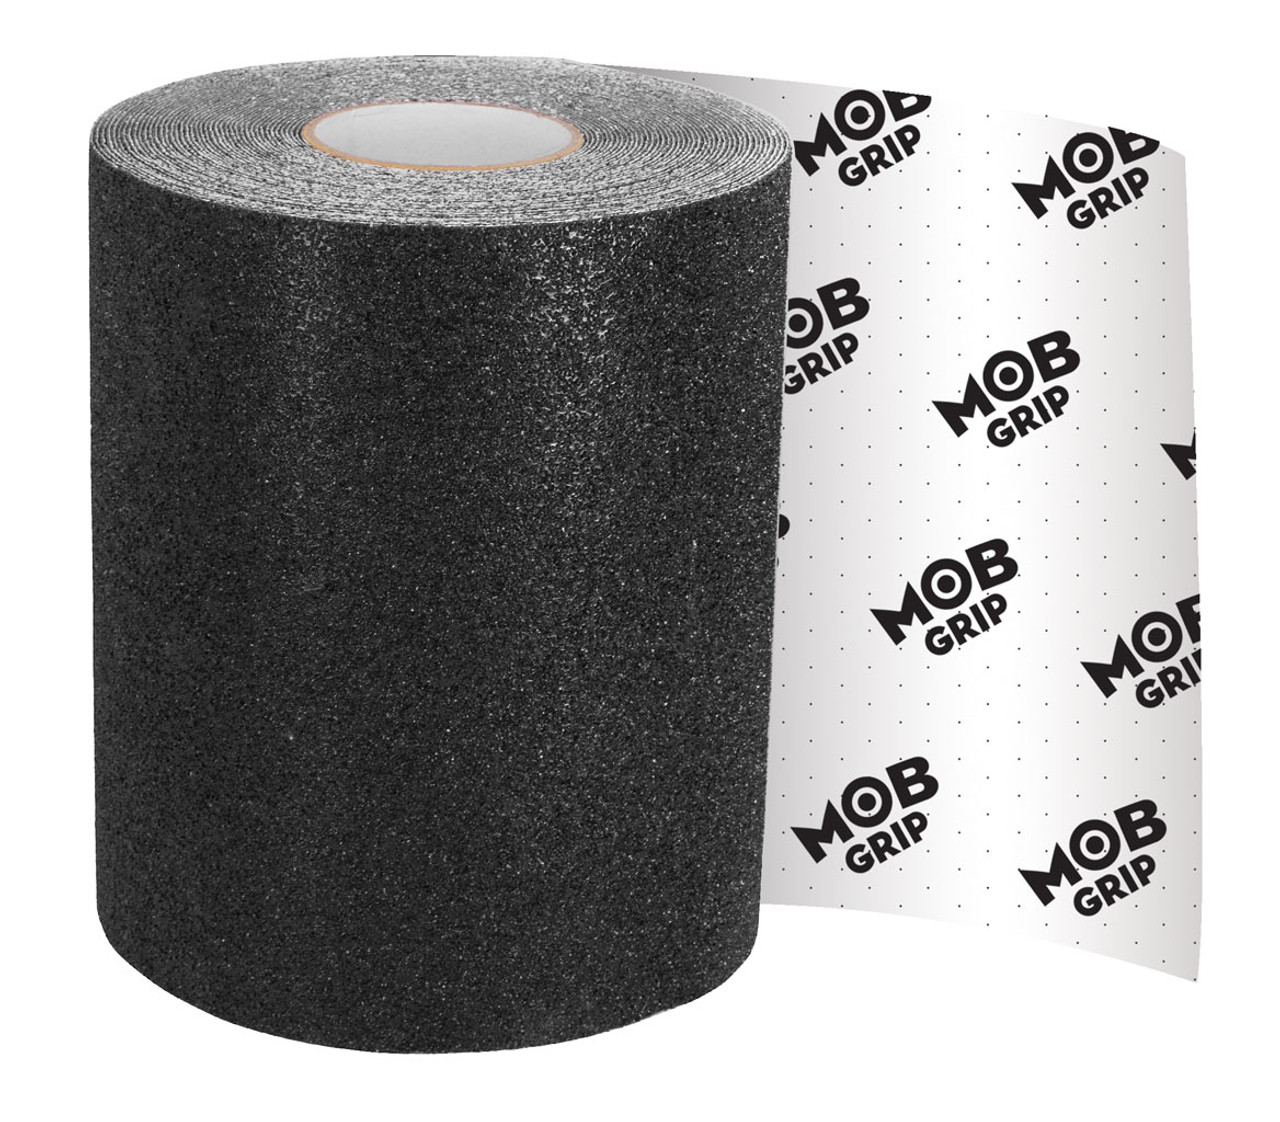 Mob 11X45 Super Coarse Grip 1 Sheet